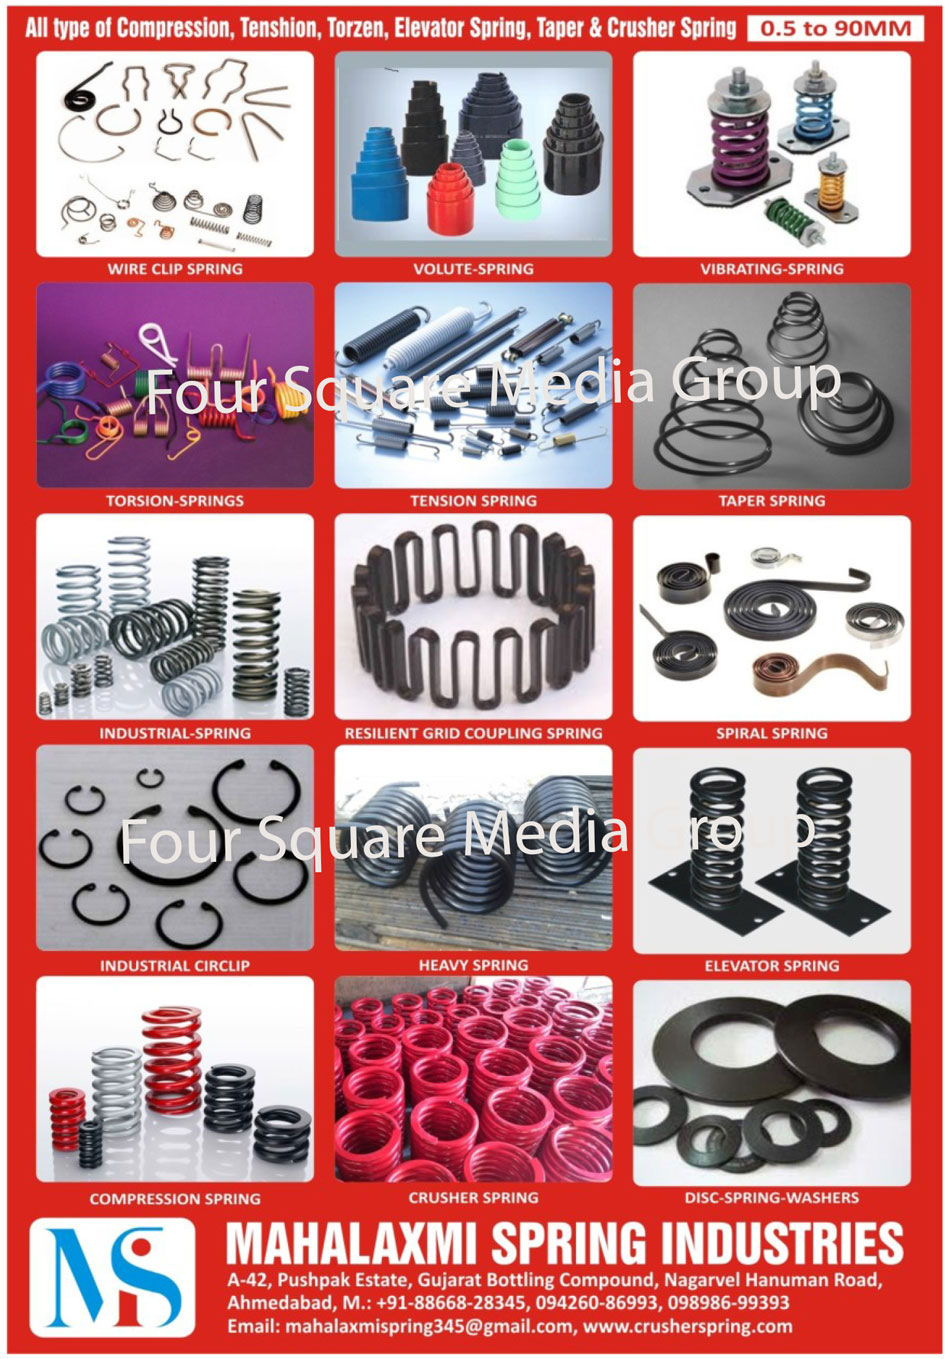 Springs, Compression Springs, Tenshion Springs, Torzen Springs, Elevator Springs, Taper Springs, Crusher Springs, Wire Clip Springs, Volute Springs, Vibrating Springs, Torsion Springs, Tension Springs, Industrial Springs, Resilient Grid Coupling Springs, Spiral Springs, Industrial Circlips, Heavy Springs, Disc Spring Washers